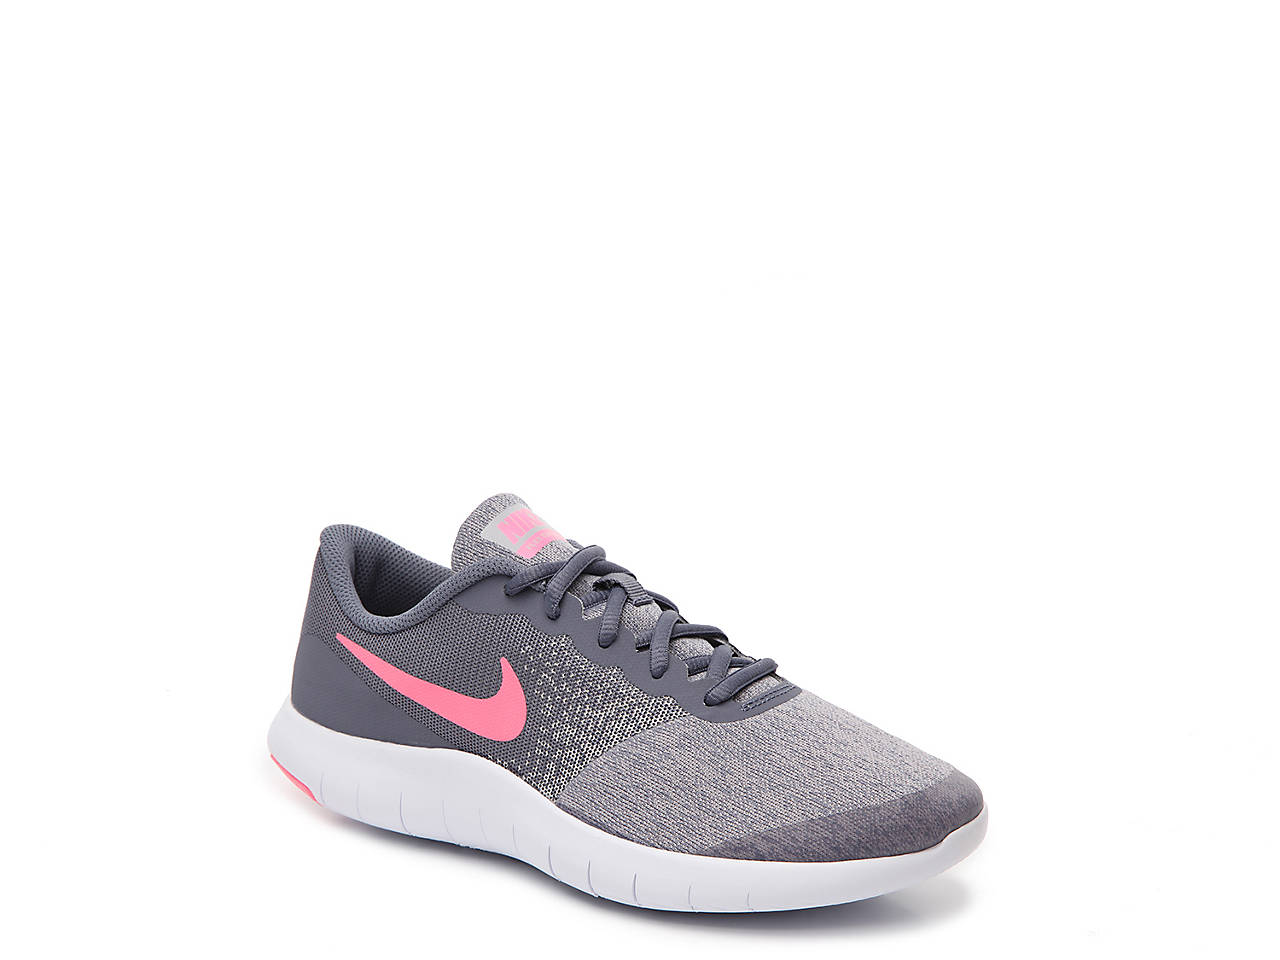 new arrival fdabe 245ed Nike. Flex Contact Youth Sneaker